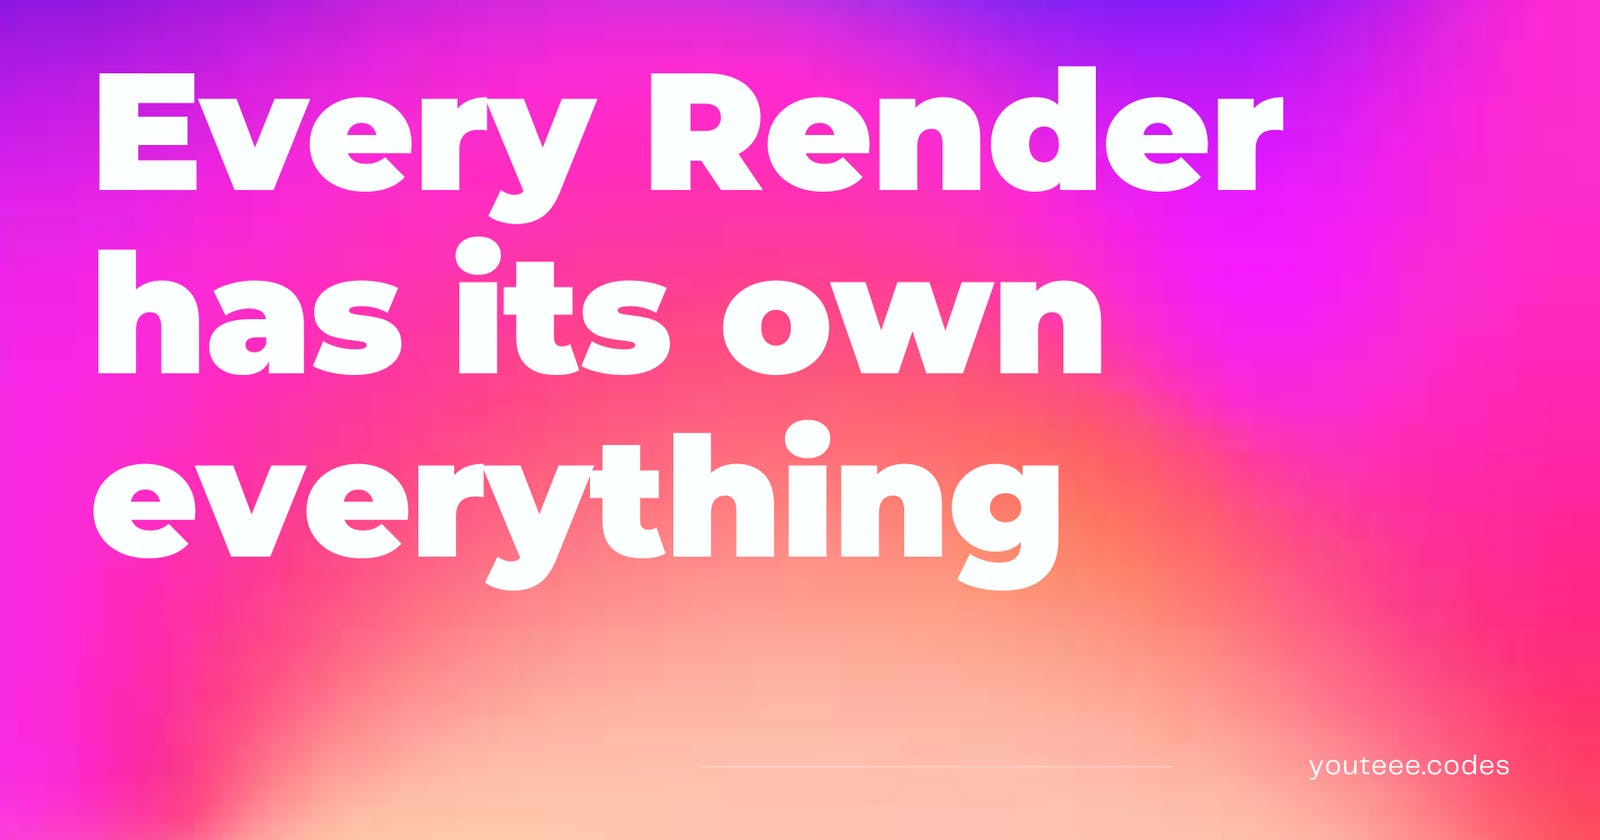 Every Render has its own everything